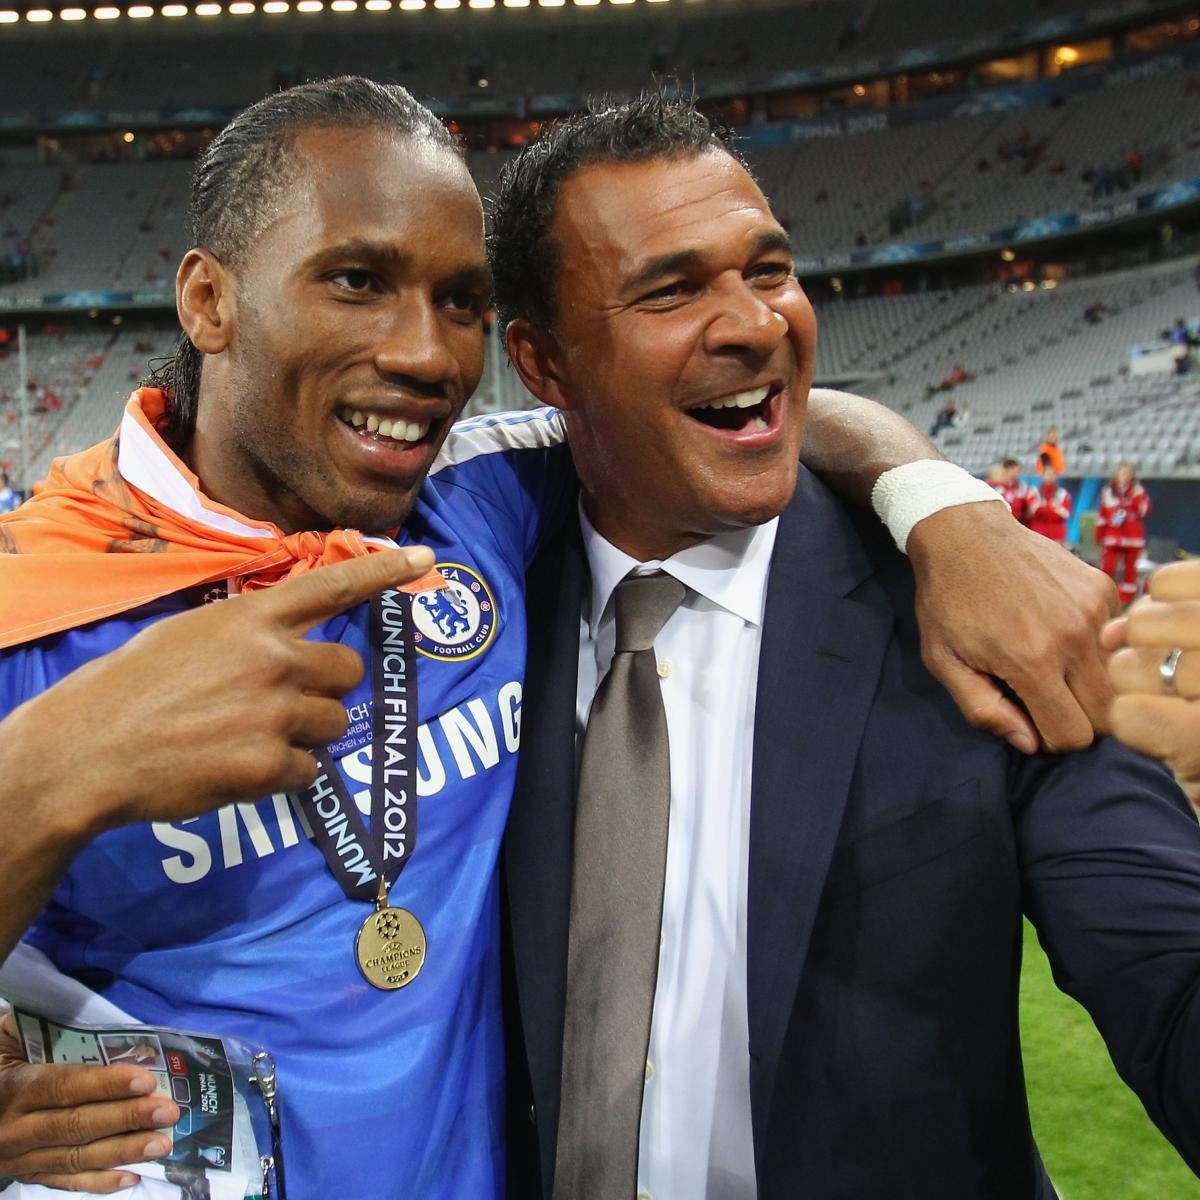 Champions League Final 2012: Didier Drogba's Champions League Final Goal Is The Peak Of